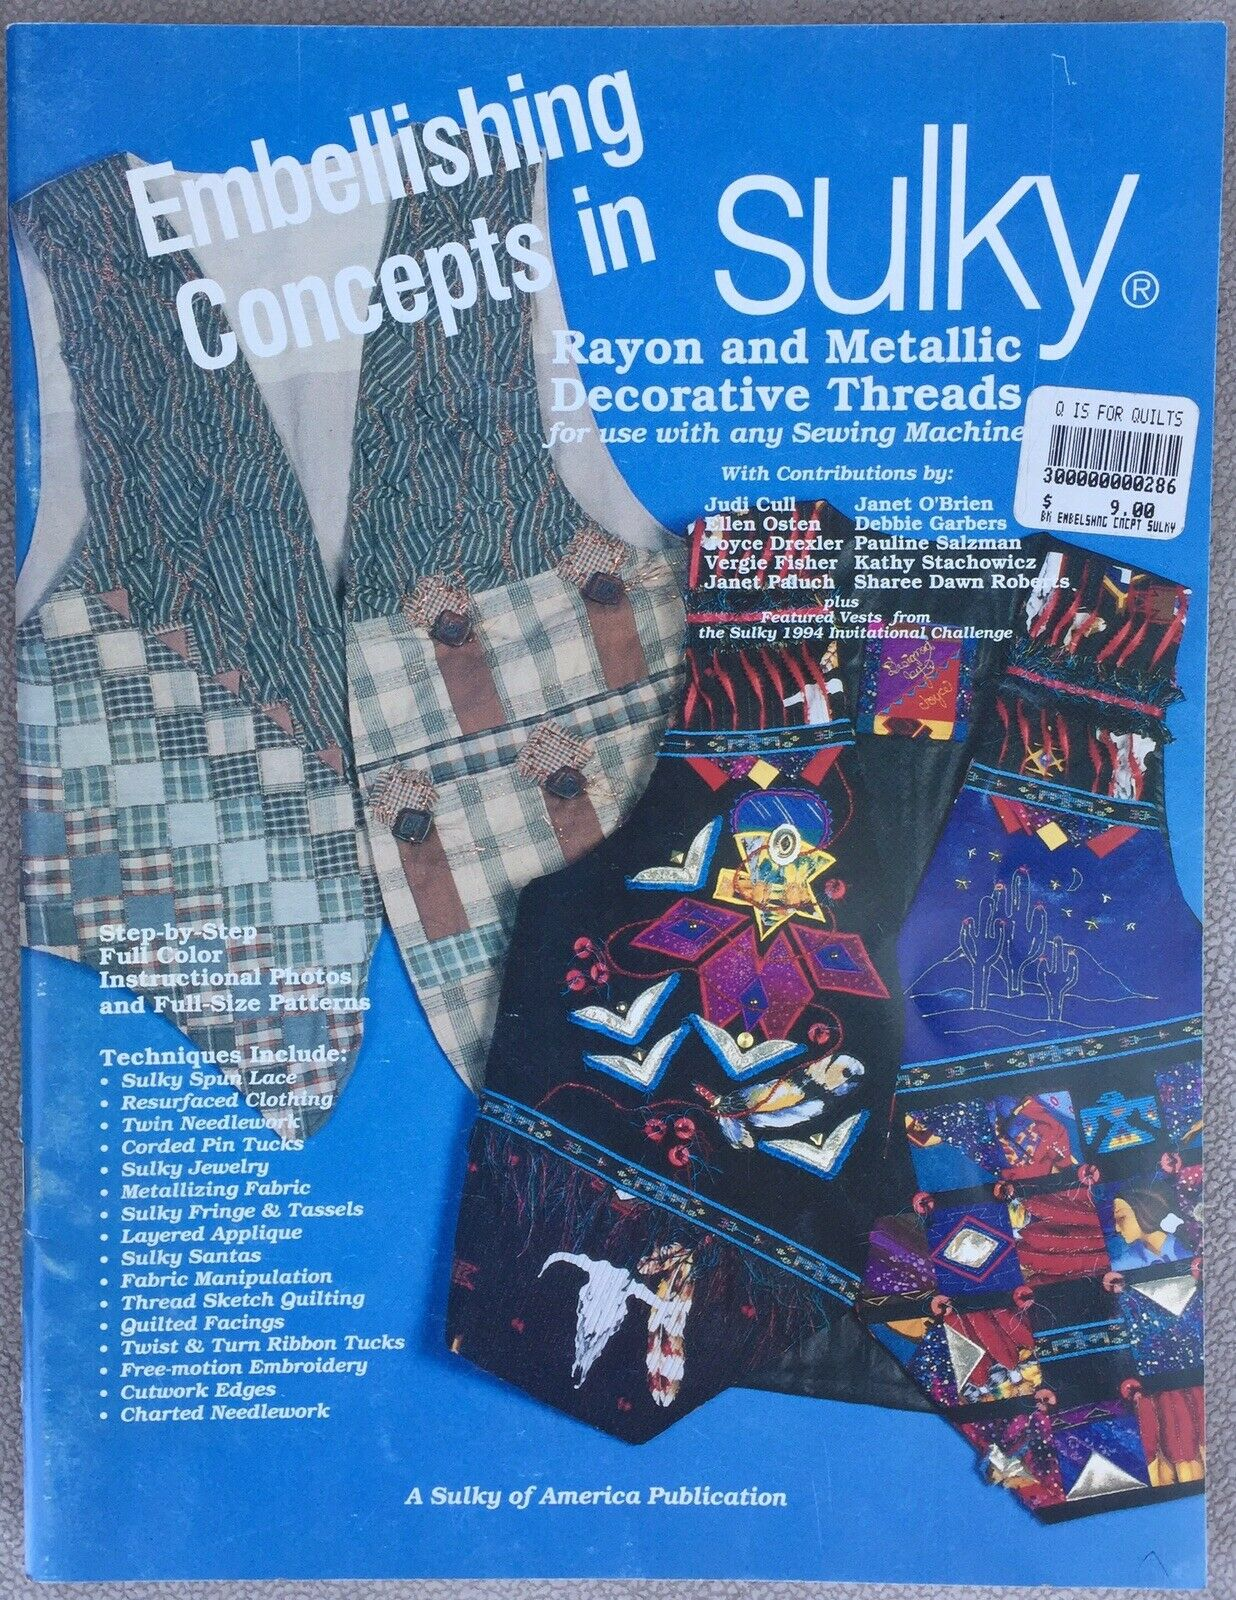 Fashion For Use with any Sewing Machine Home Decor Embroidery Concepts in Sulky Decorative Thread